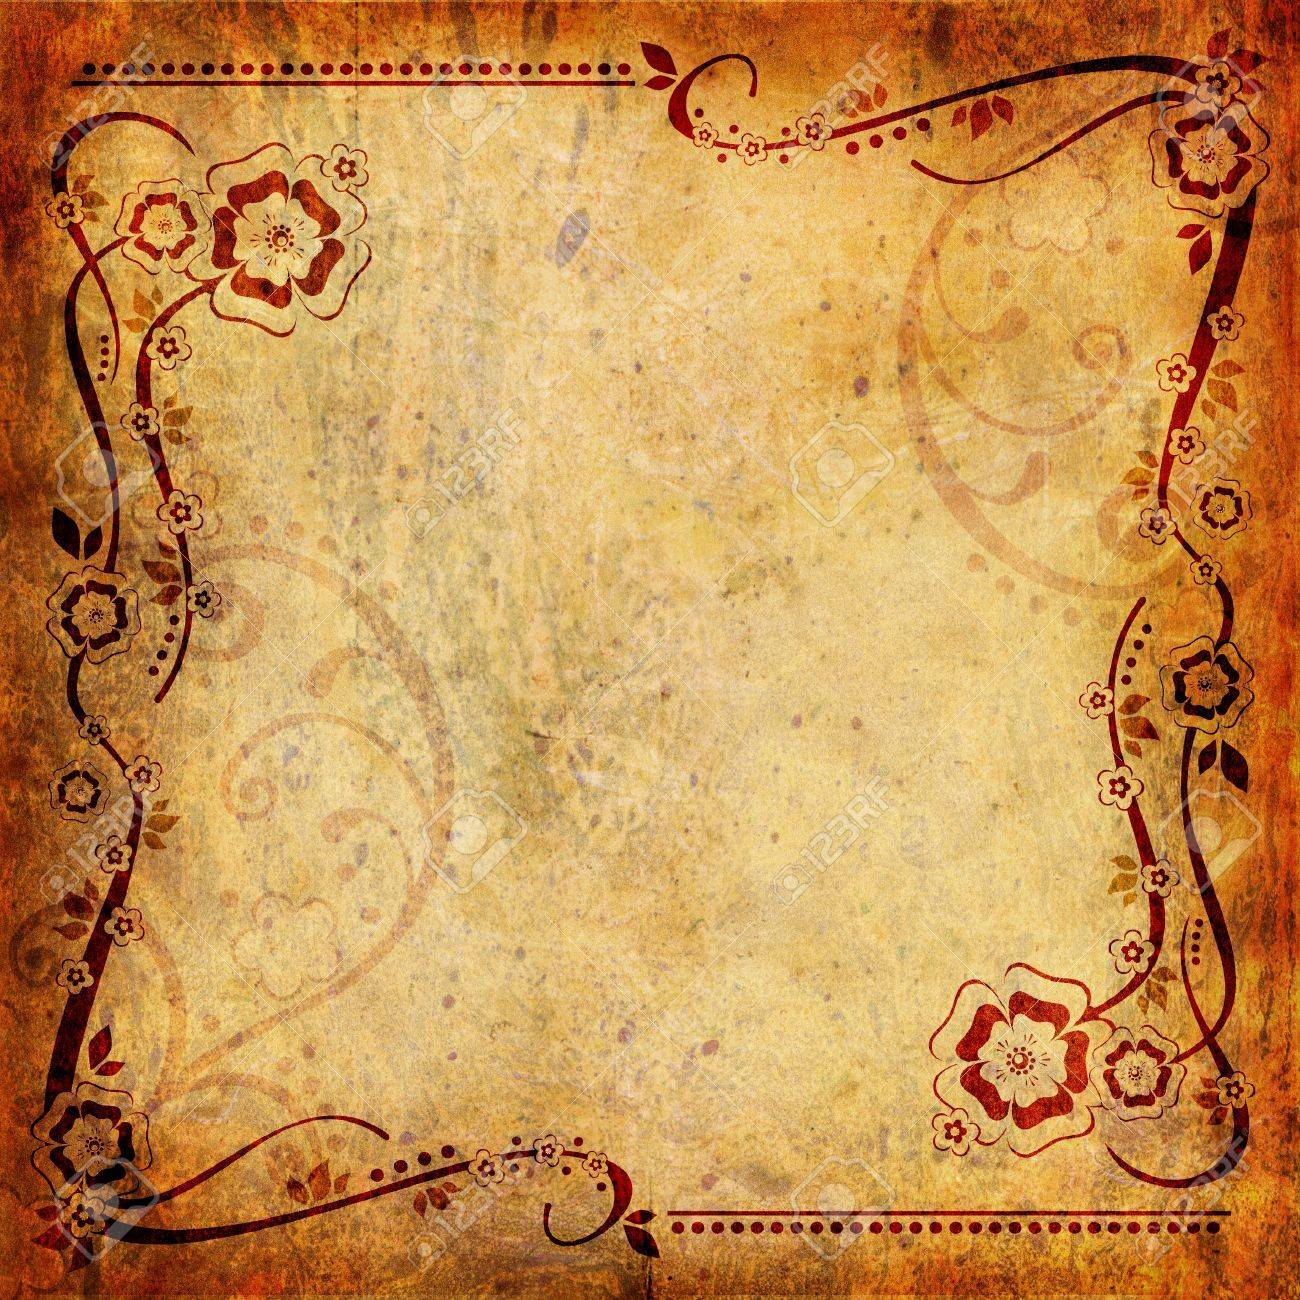 Vintage background with flower and leaf - 14833567